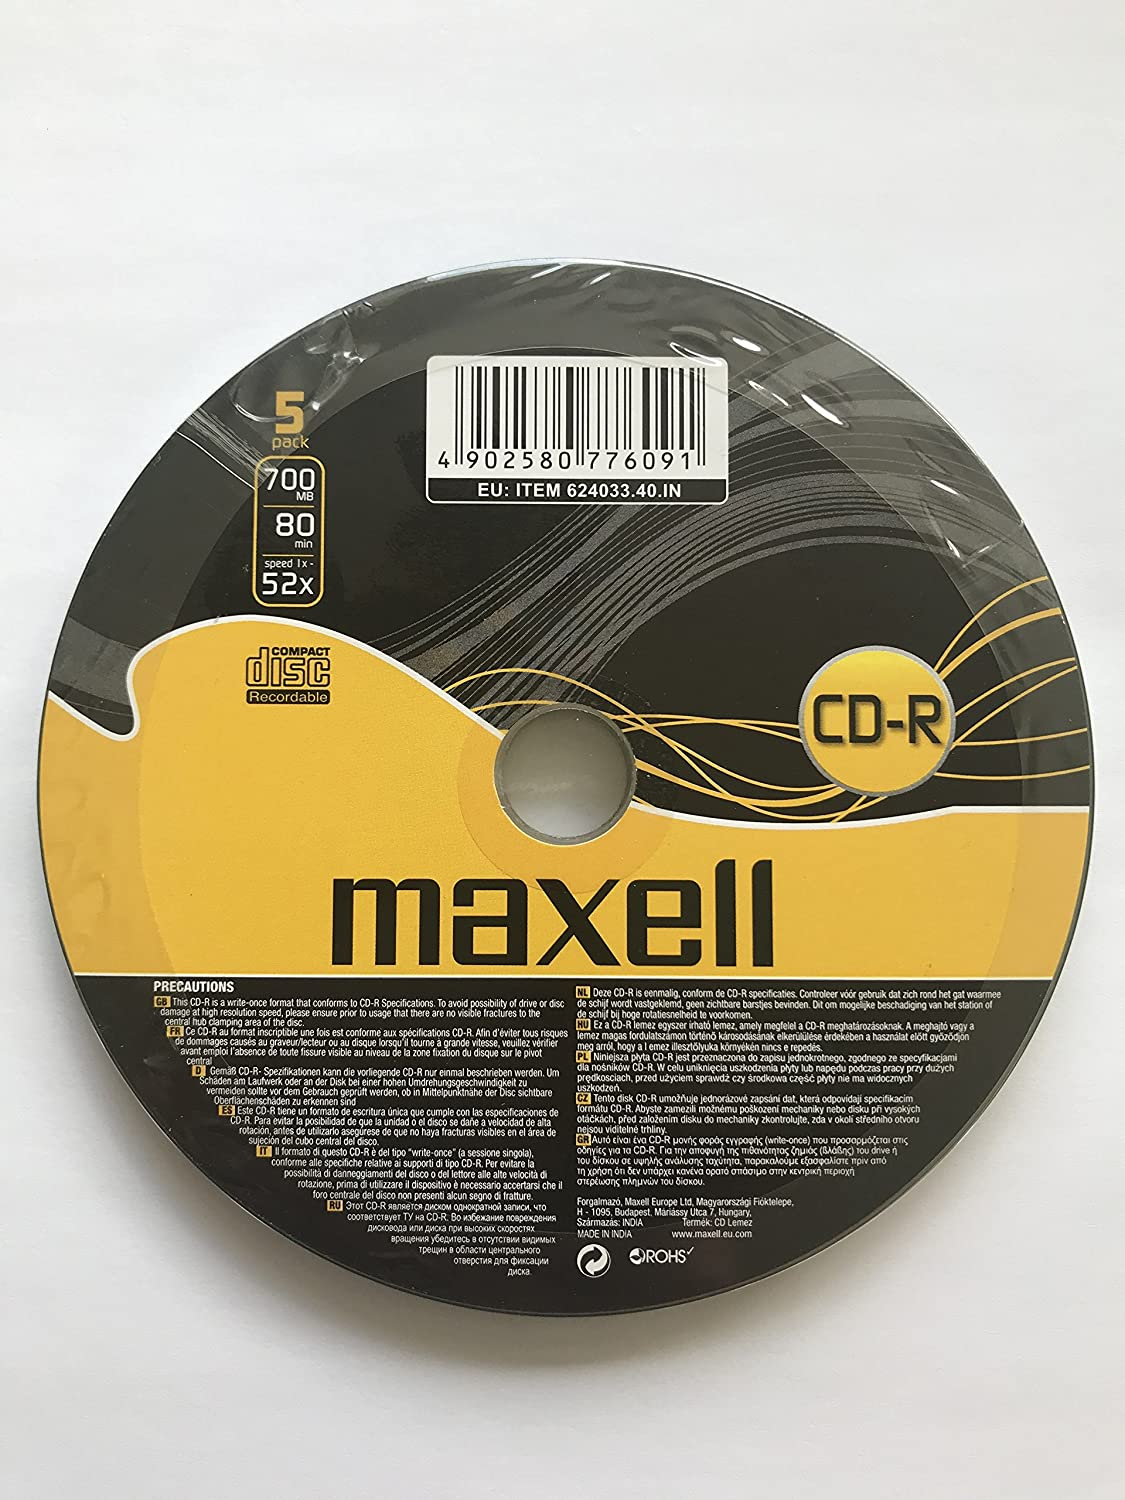 Maxell CD-R 80 Minutes 700MB 52x Speed Recordable Blank Disc - 5 Pack Shrink Wrap